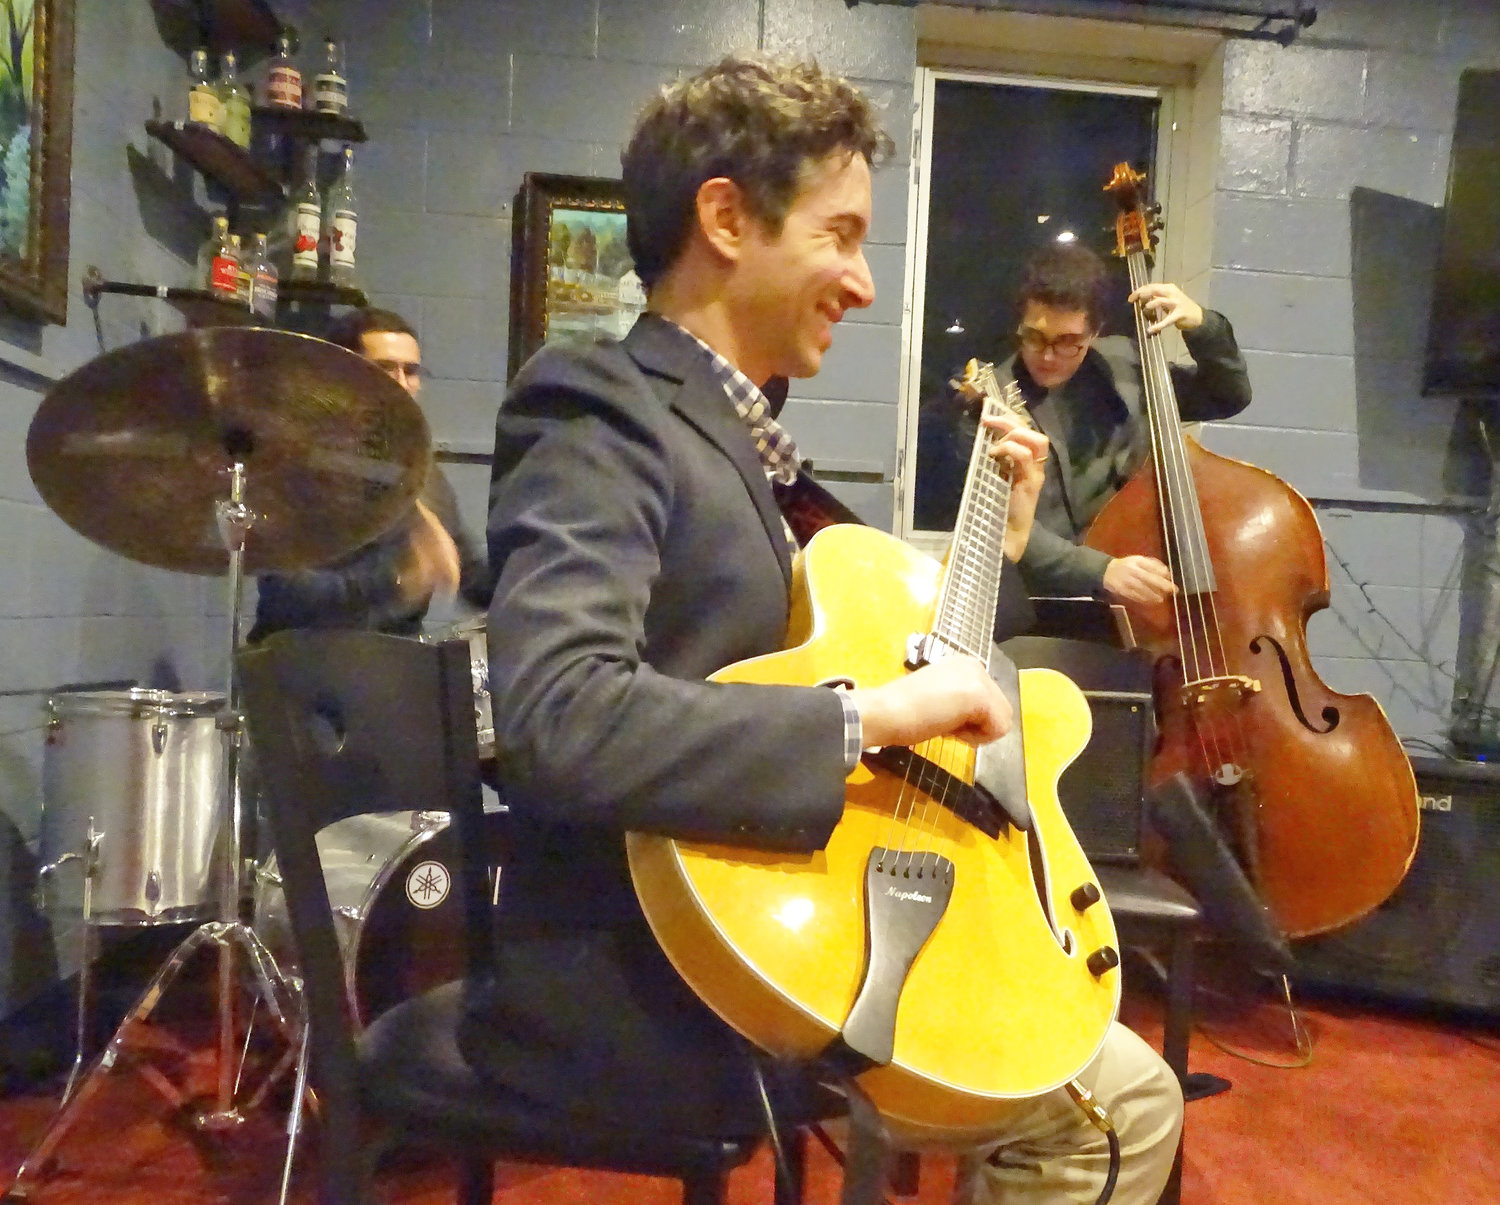 Guitarist Randy Napoleon brought his quartet to Red Cedar Spirits Thursday and will return Dec. 5. Joining Napoleon Thursday were Lucas Lafave (left, on bass), Will Crandall (drums) and Andre Crawford on piano (not pictured).